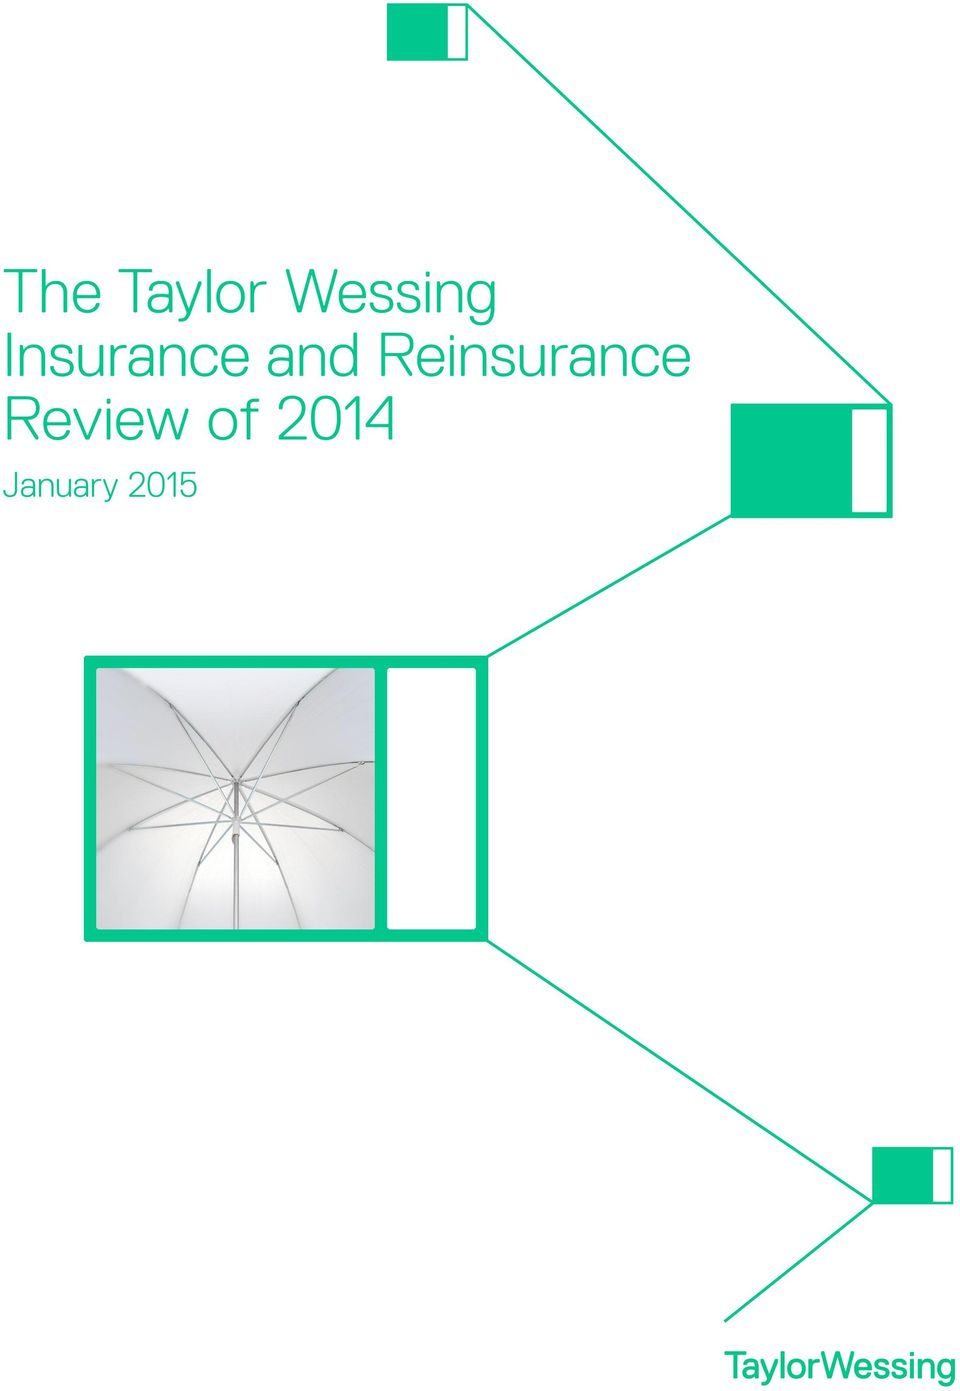 and Reinsurance